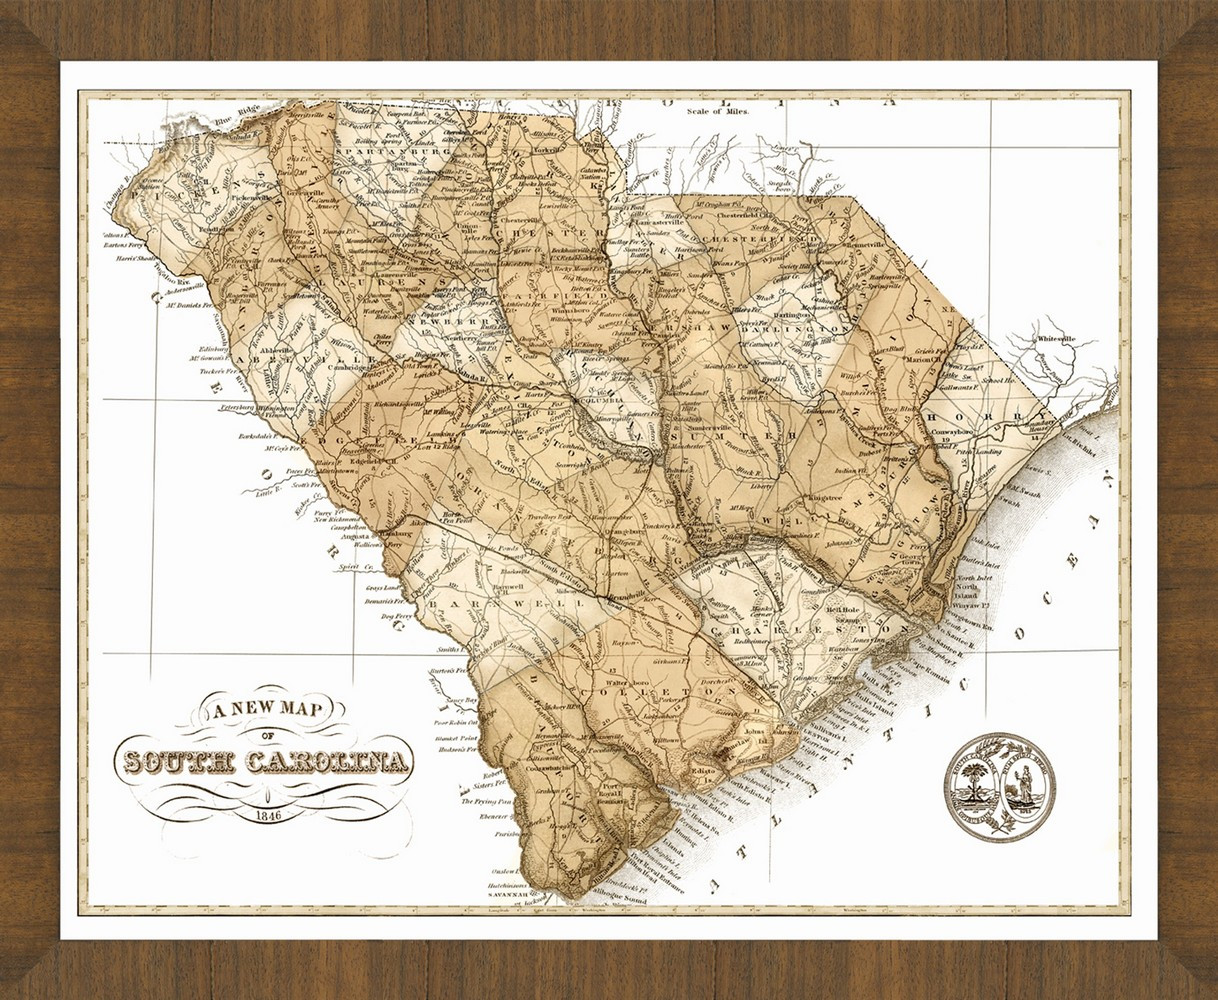 Old Map of South Carolina – A Great Framed Map That\'s Ready to Hang